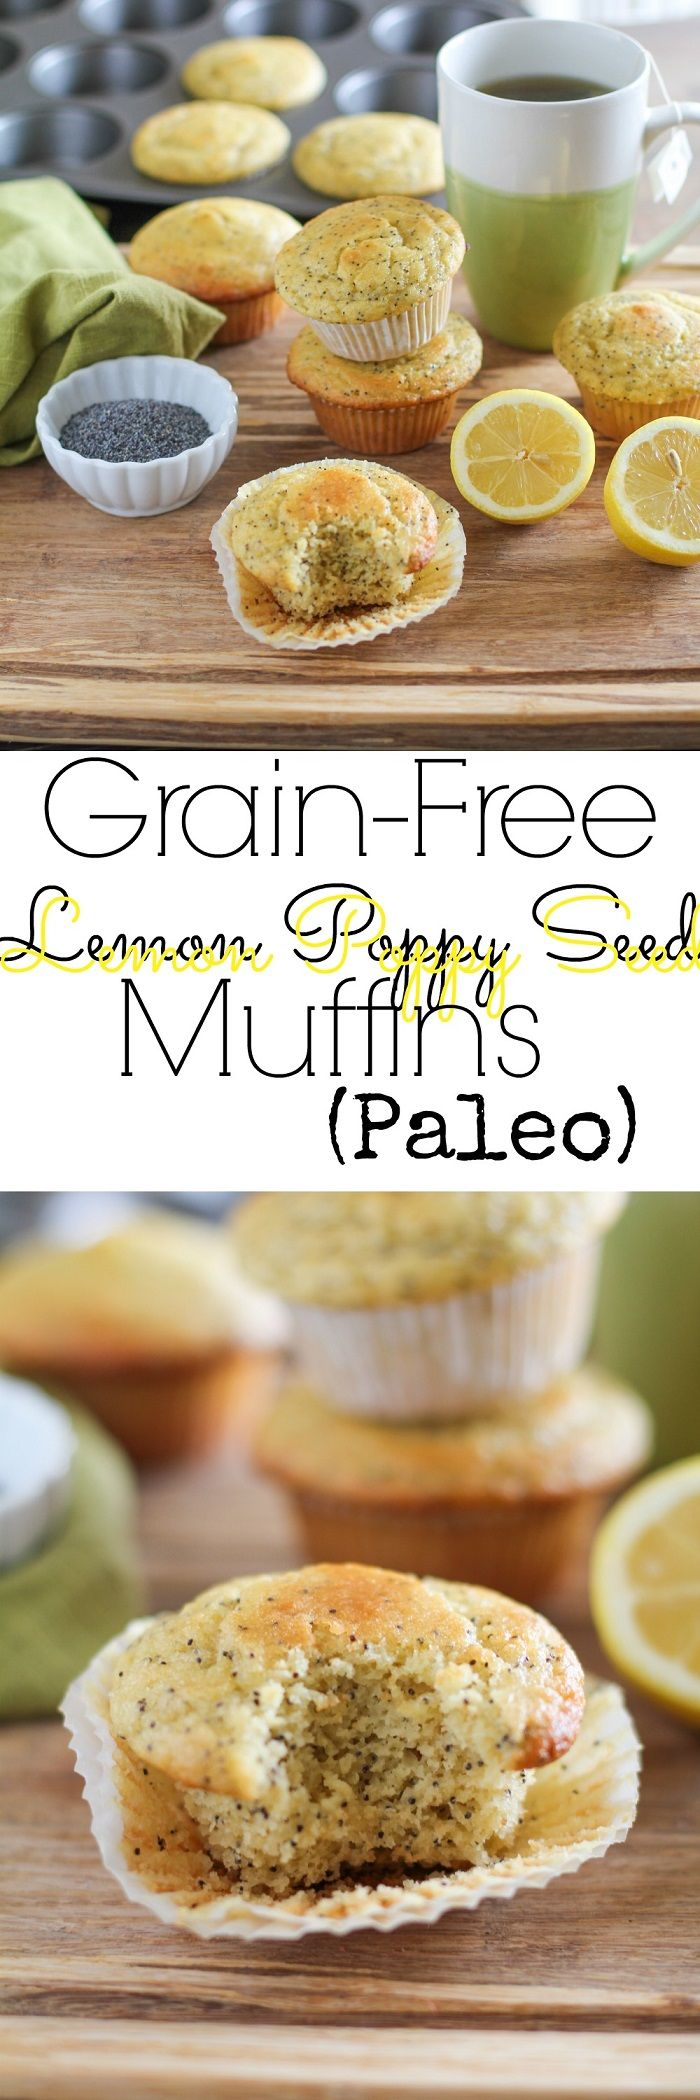 Grain-Free Lemon Poppy Seed Muffins - refined sugar free, gluten-free, and paleo-friendly | TheRoastedRoot.net #healthy #breakfast #recipe